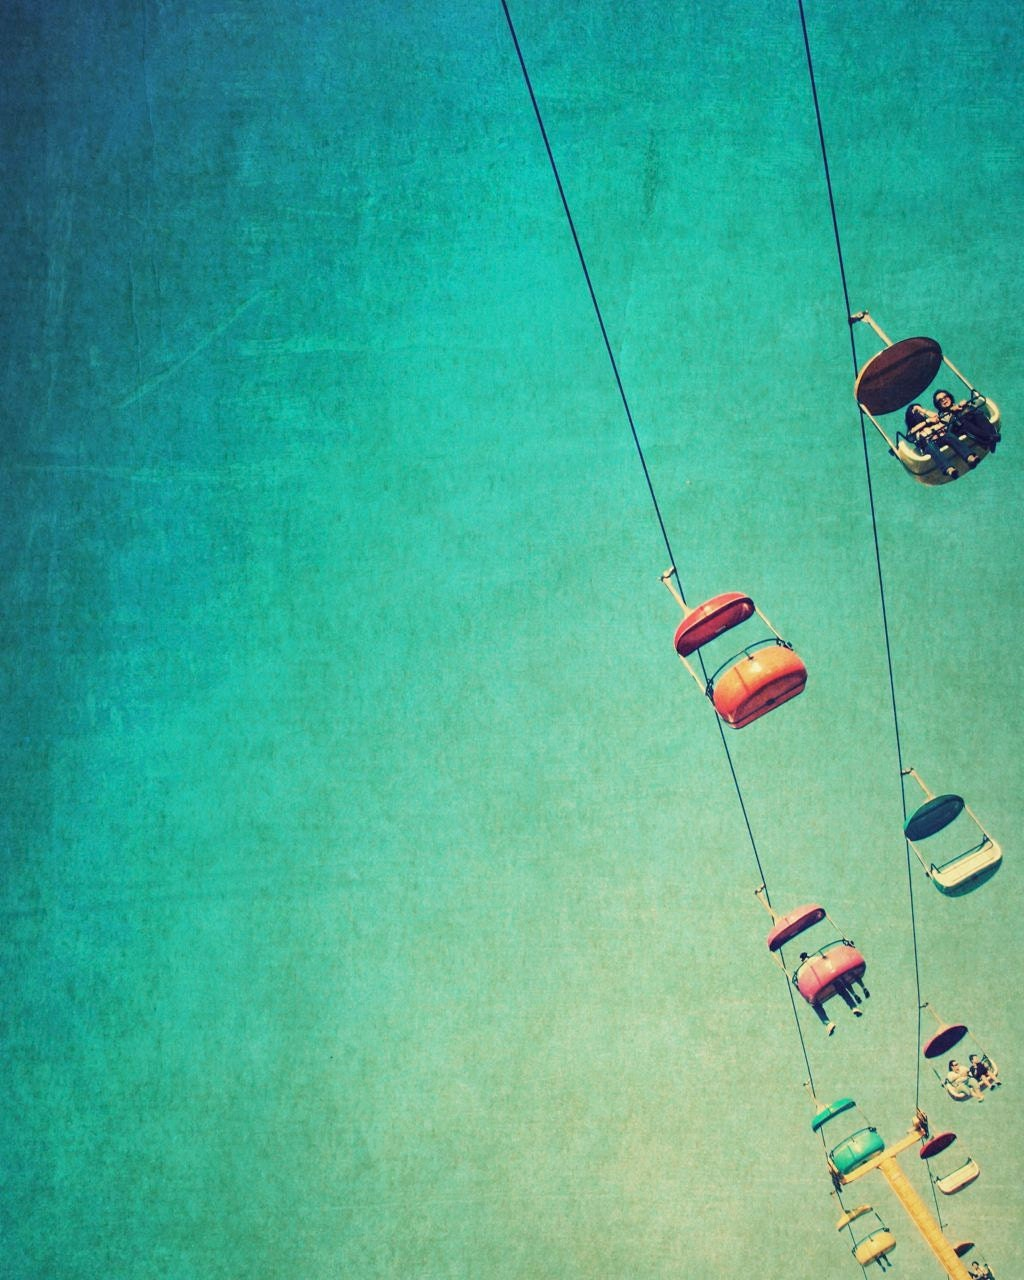 Carnival photo, Santa Cruz, teal, aqua, orange, pink, yellow, spring colors, retro, vintage style - SkyGlider II, 8x10 art - SeptemberWren